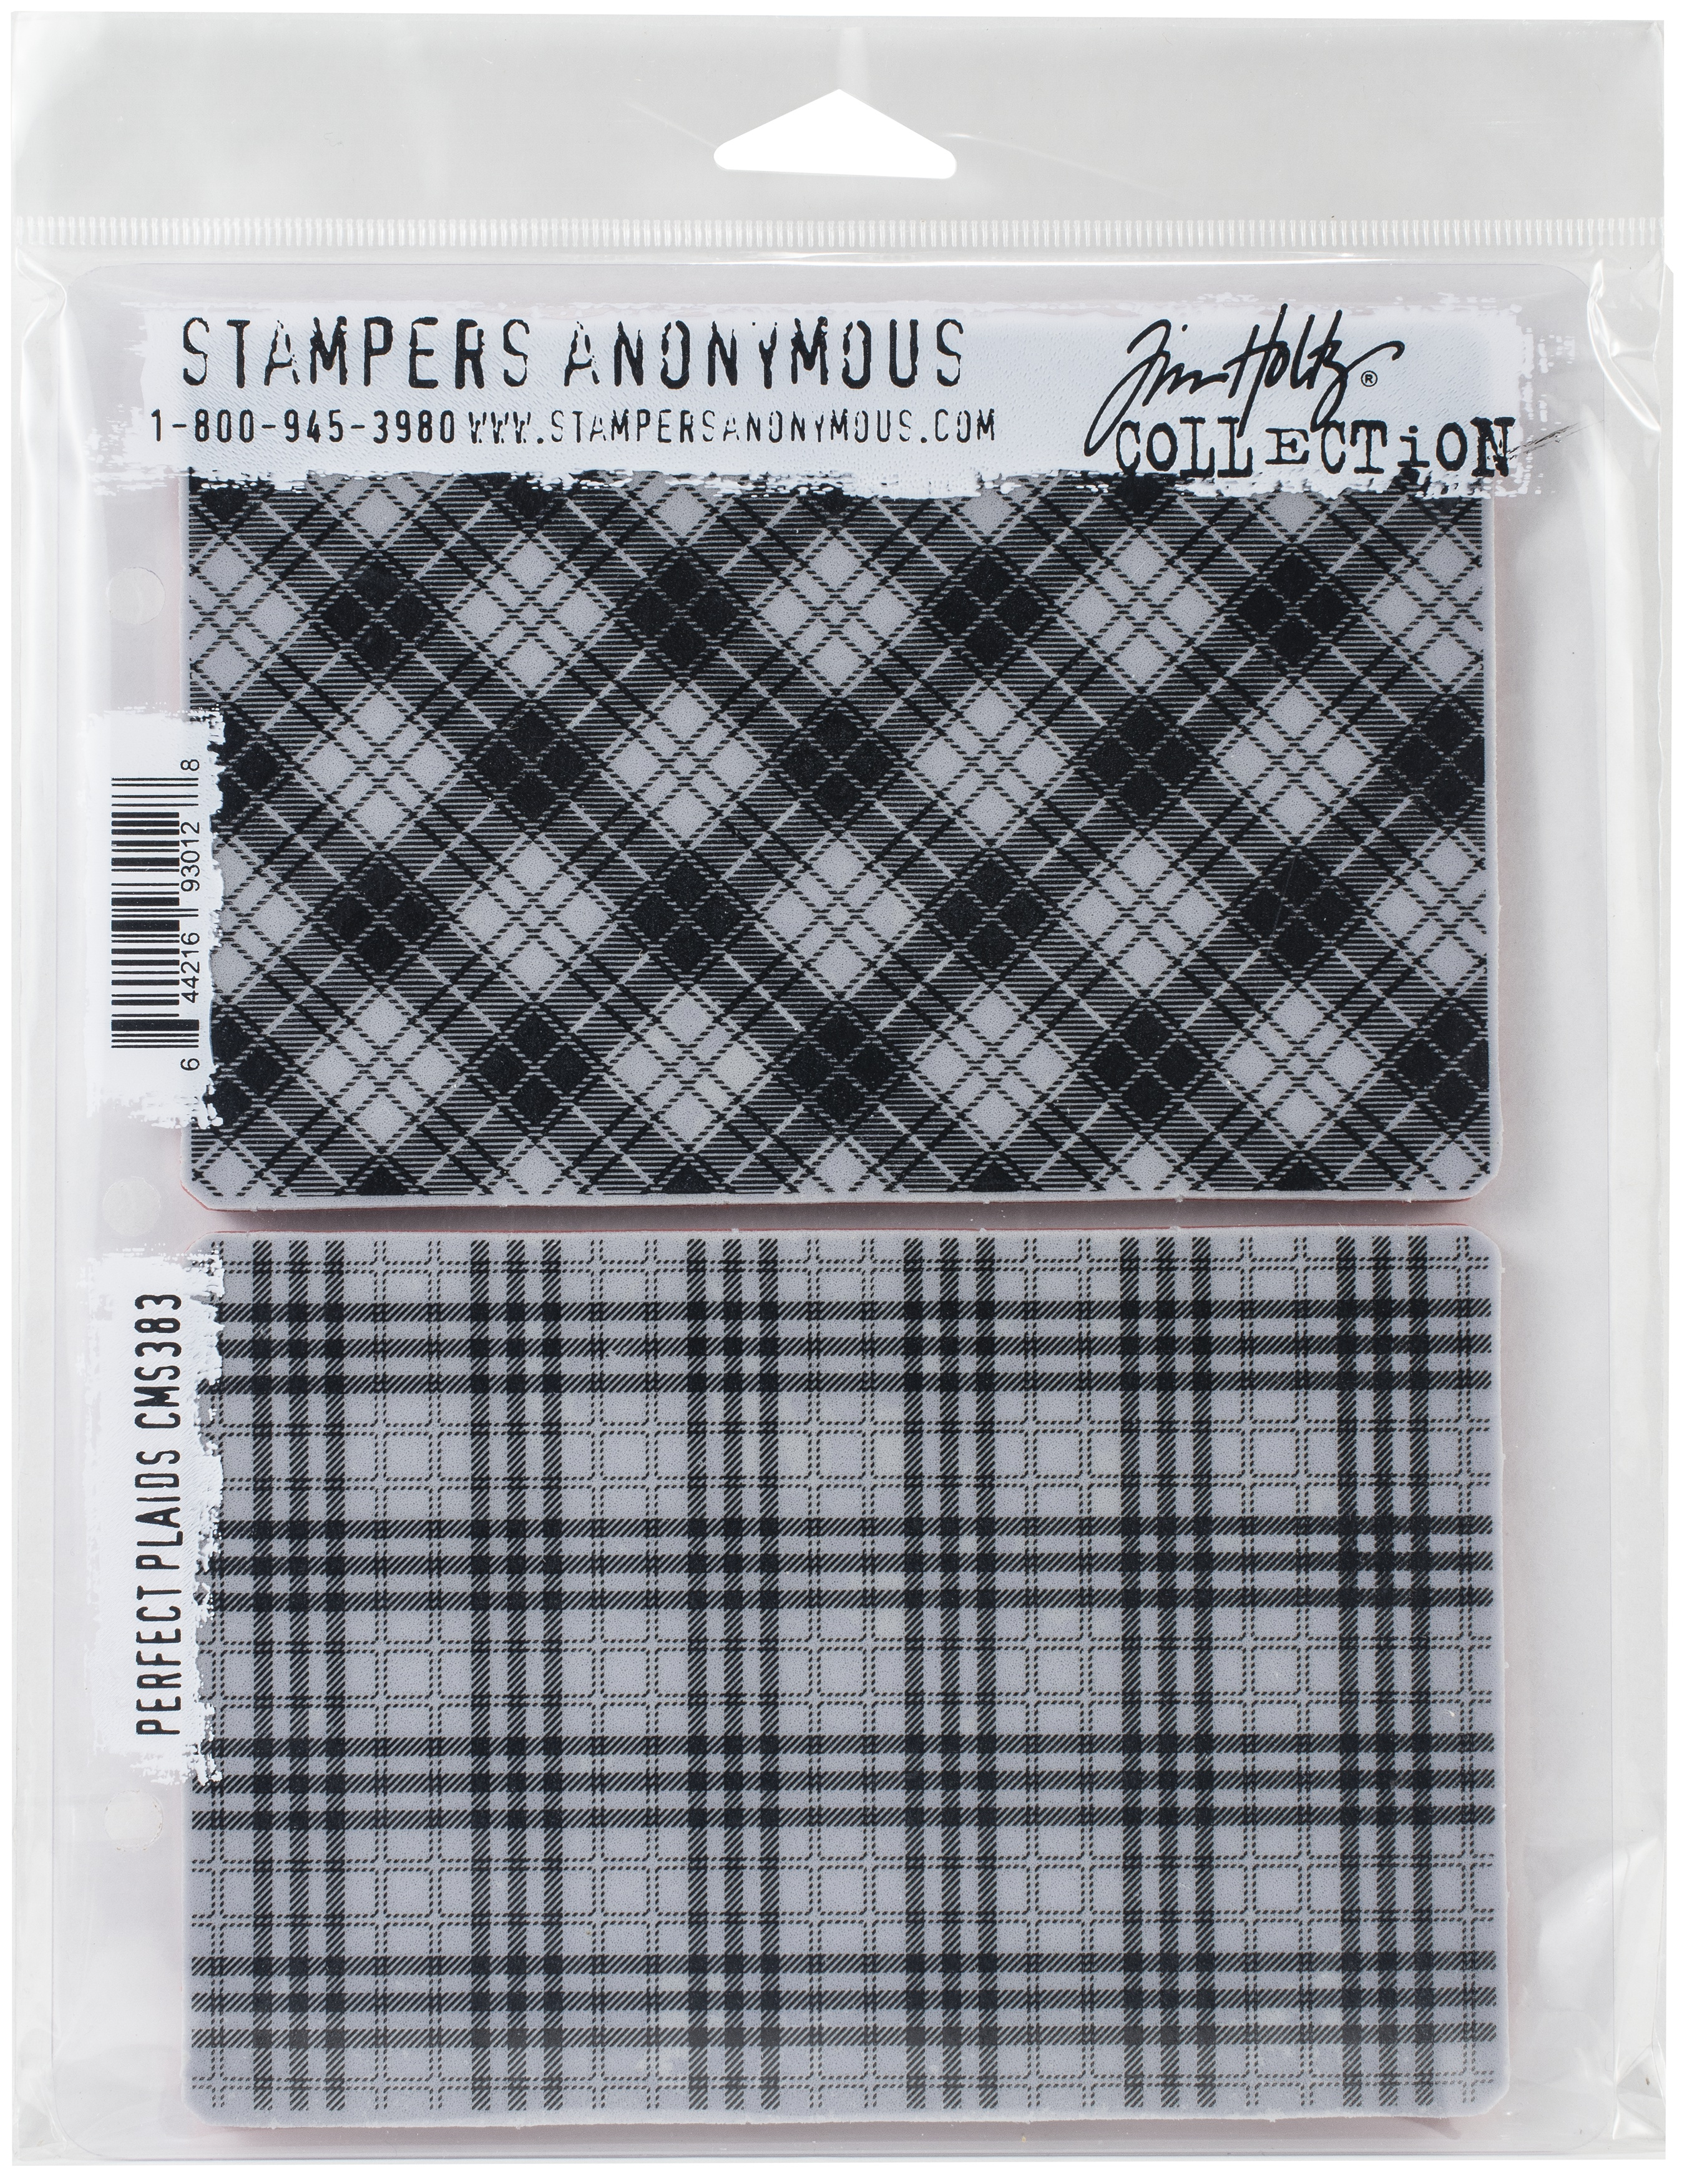 Tim Holtz Cling Stamps 7X8.5-Perfect Plaid